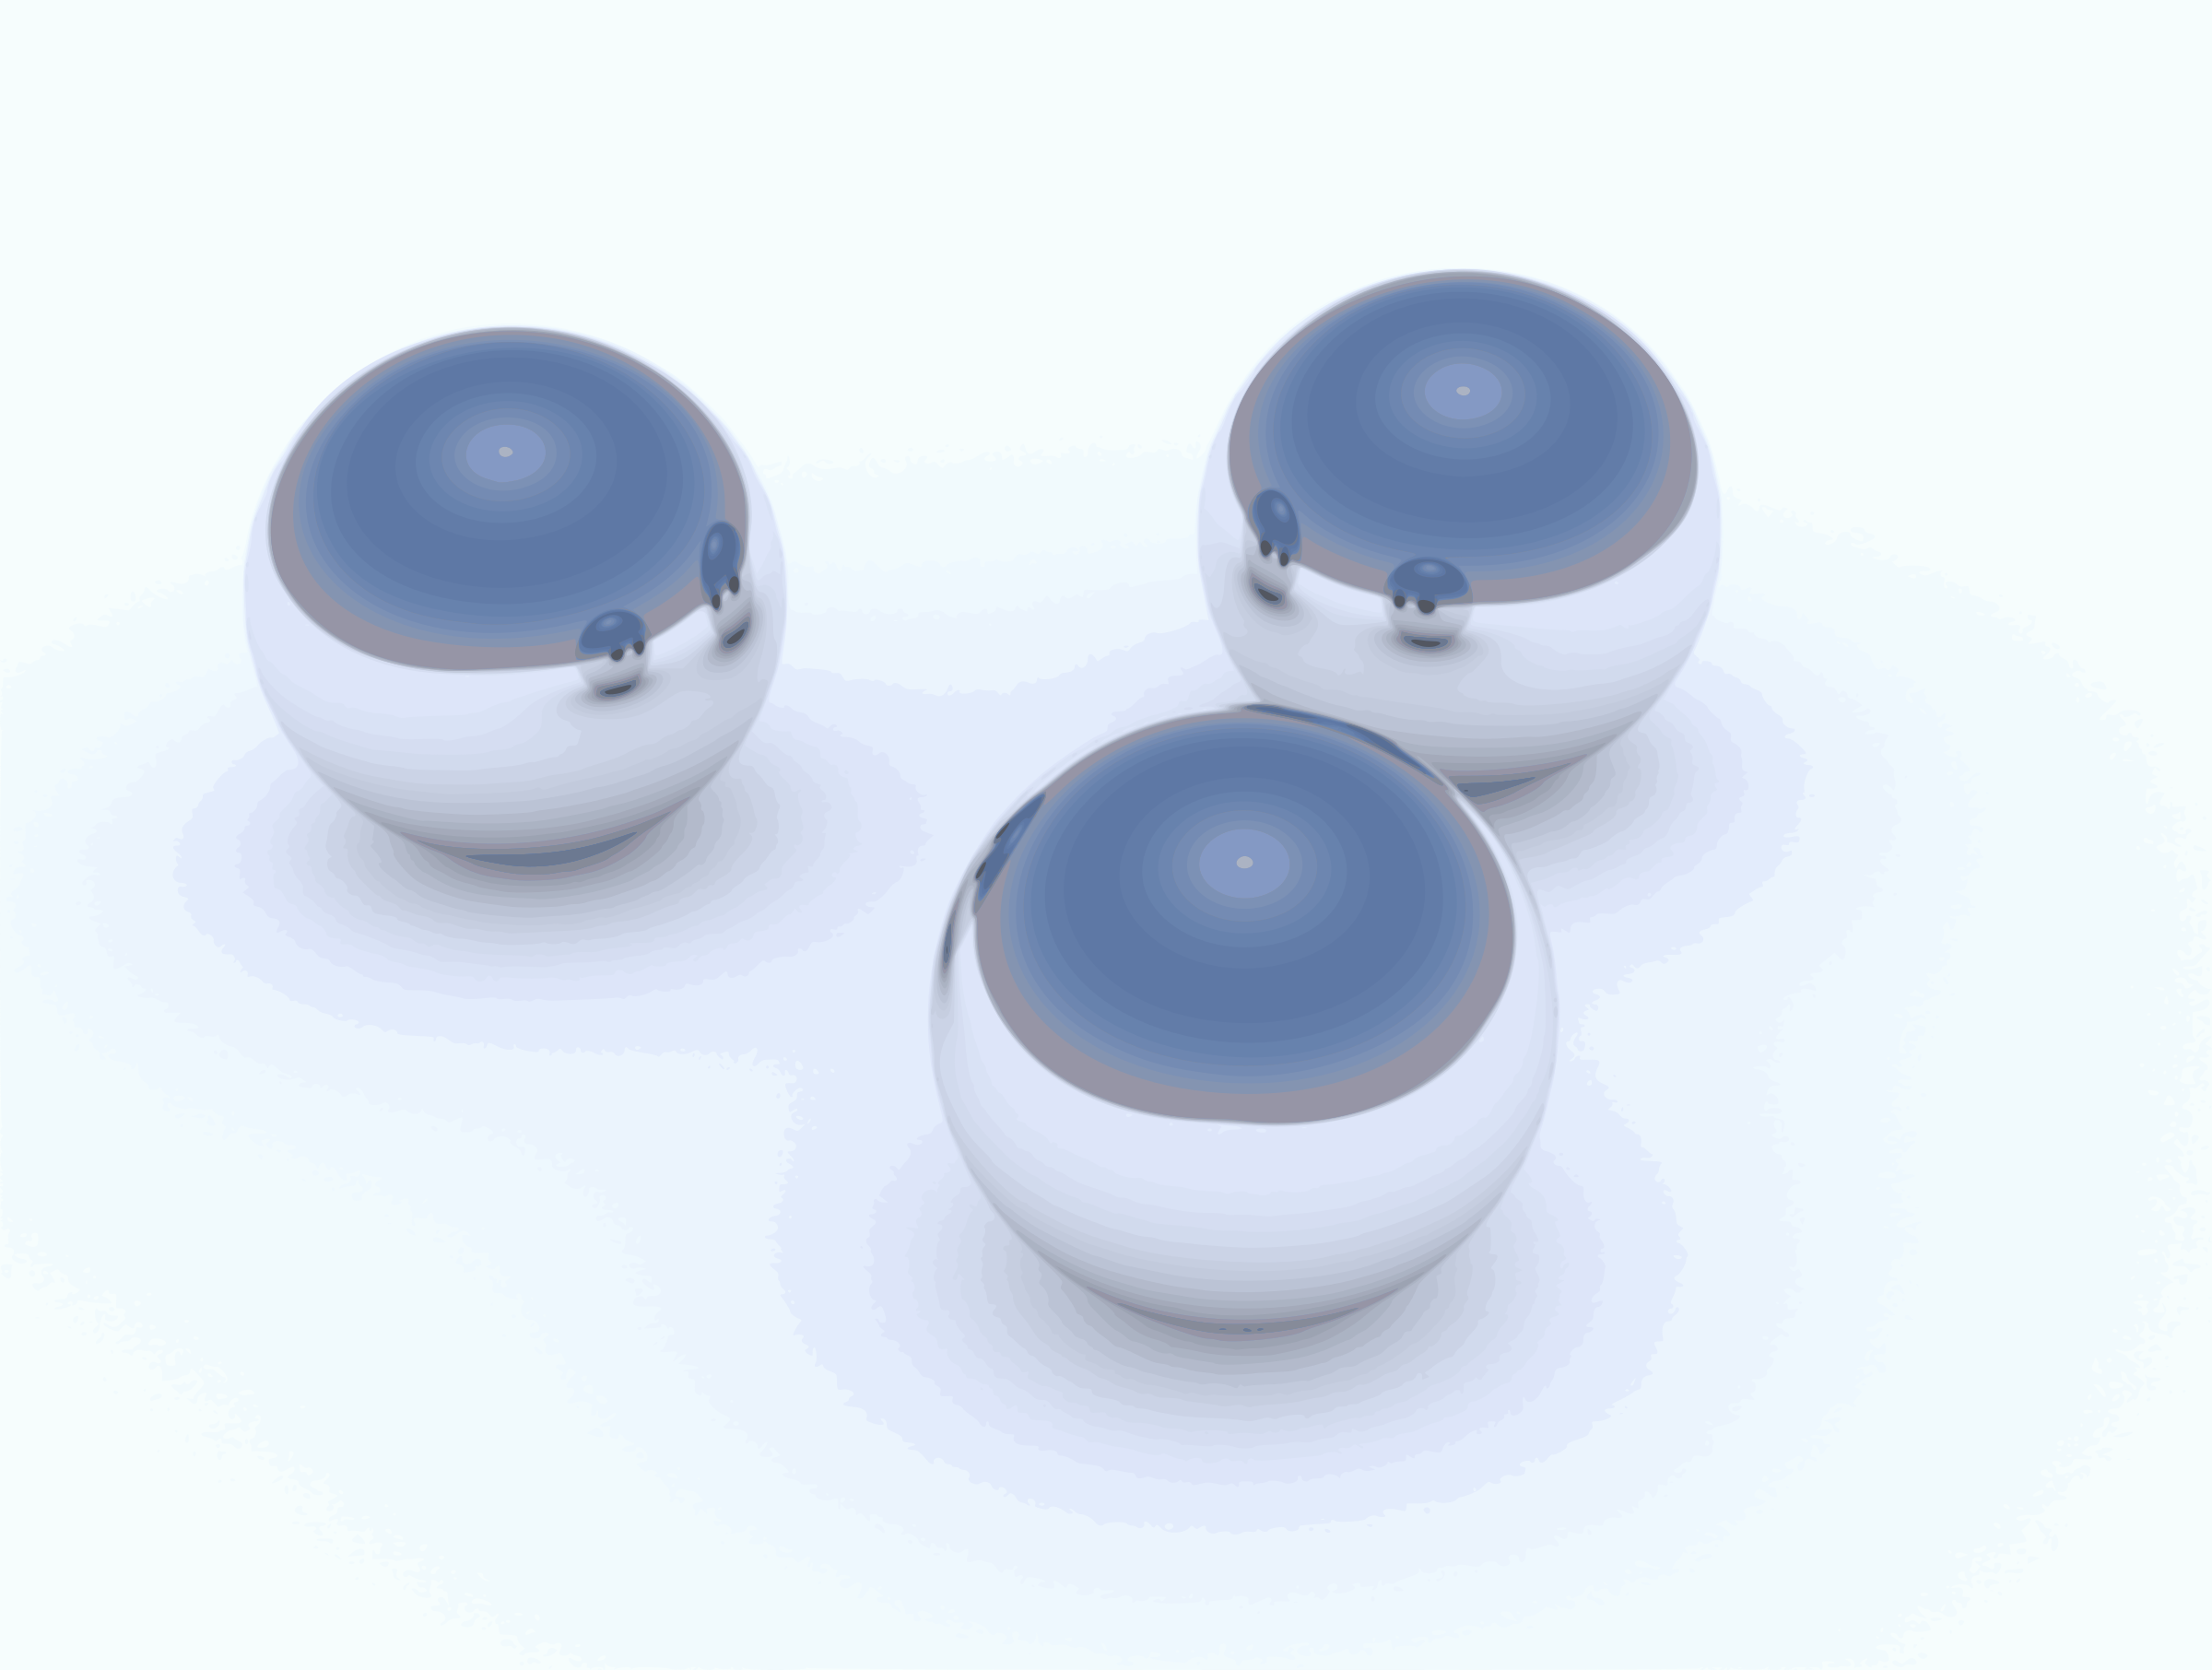 3 Reflective Balls - Vectorized by photofree.ga